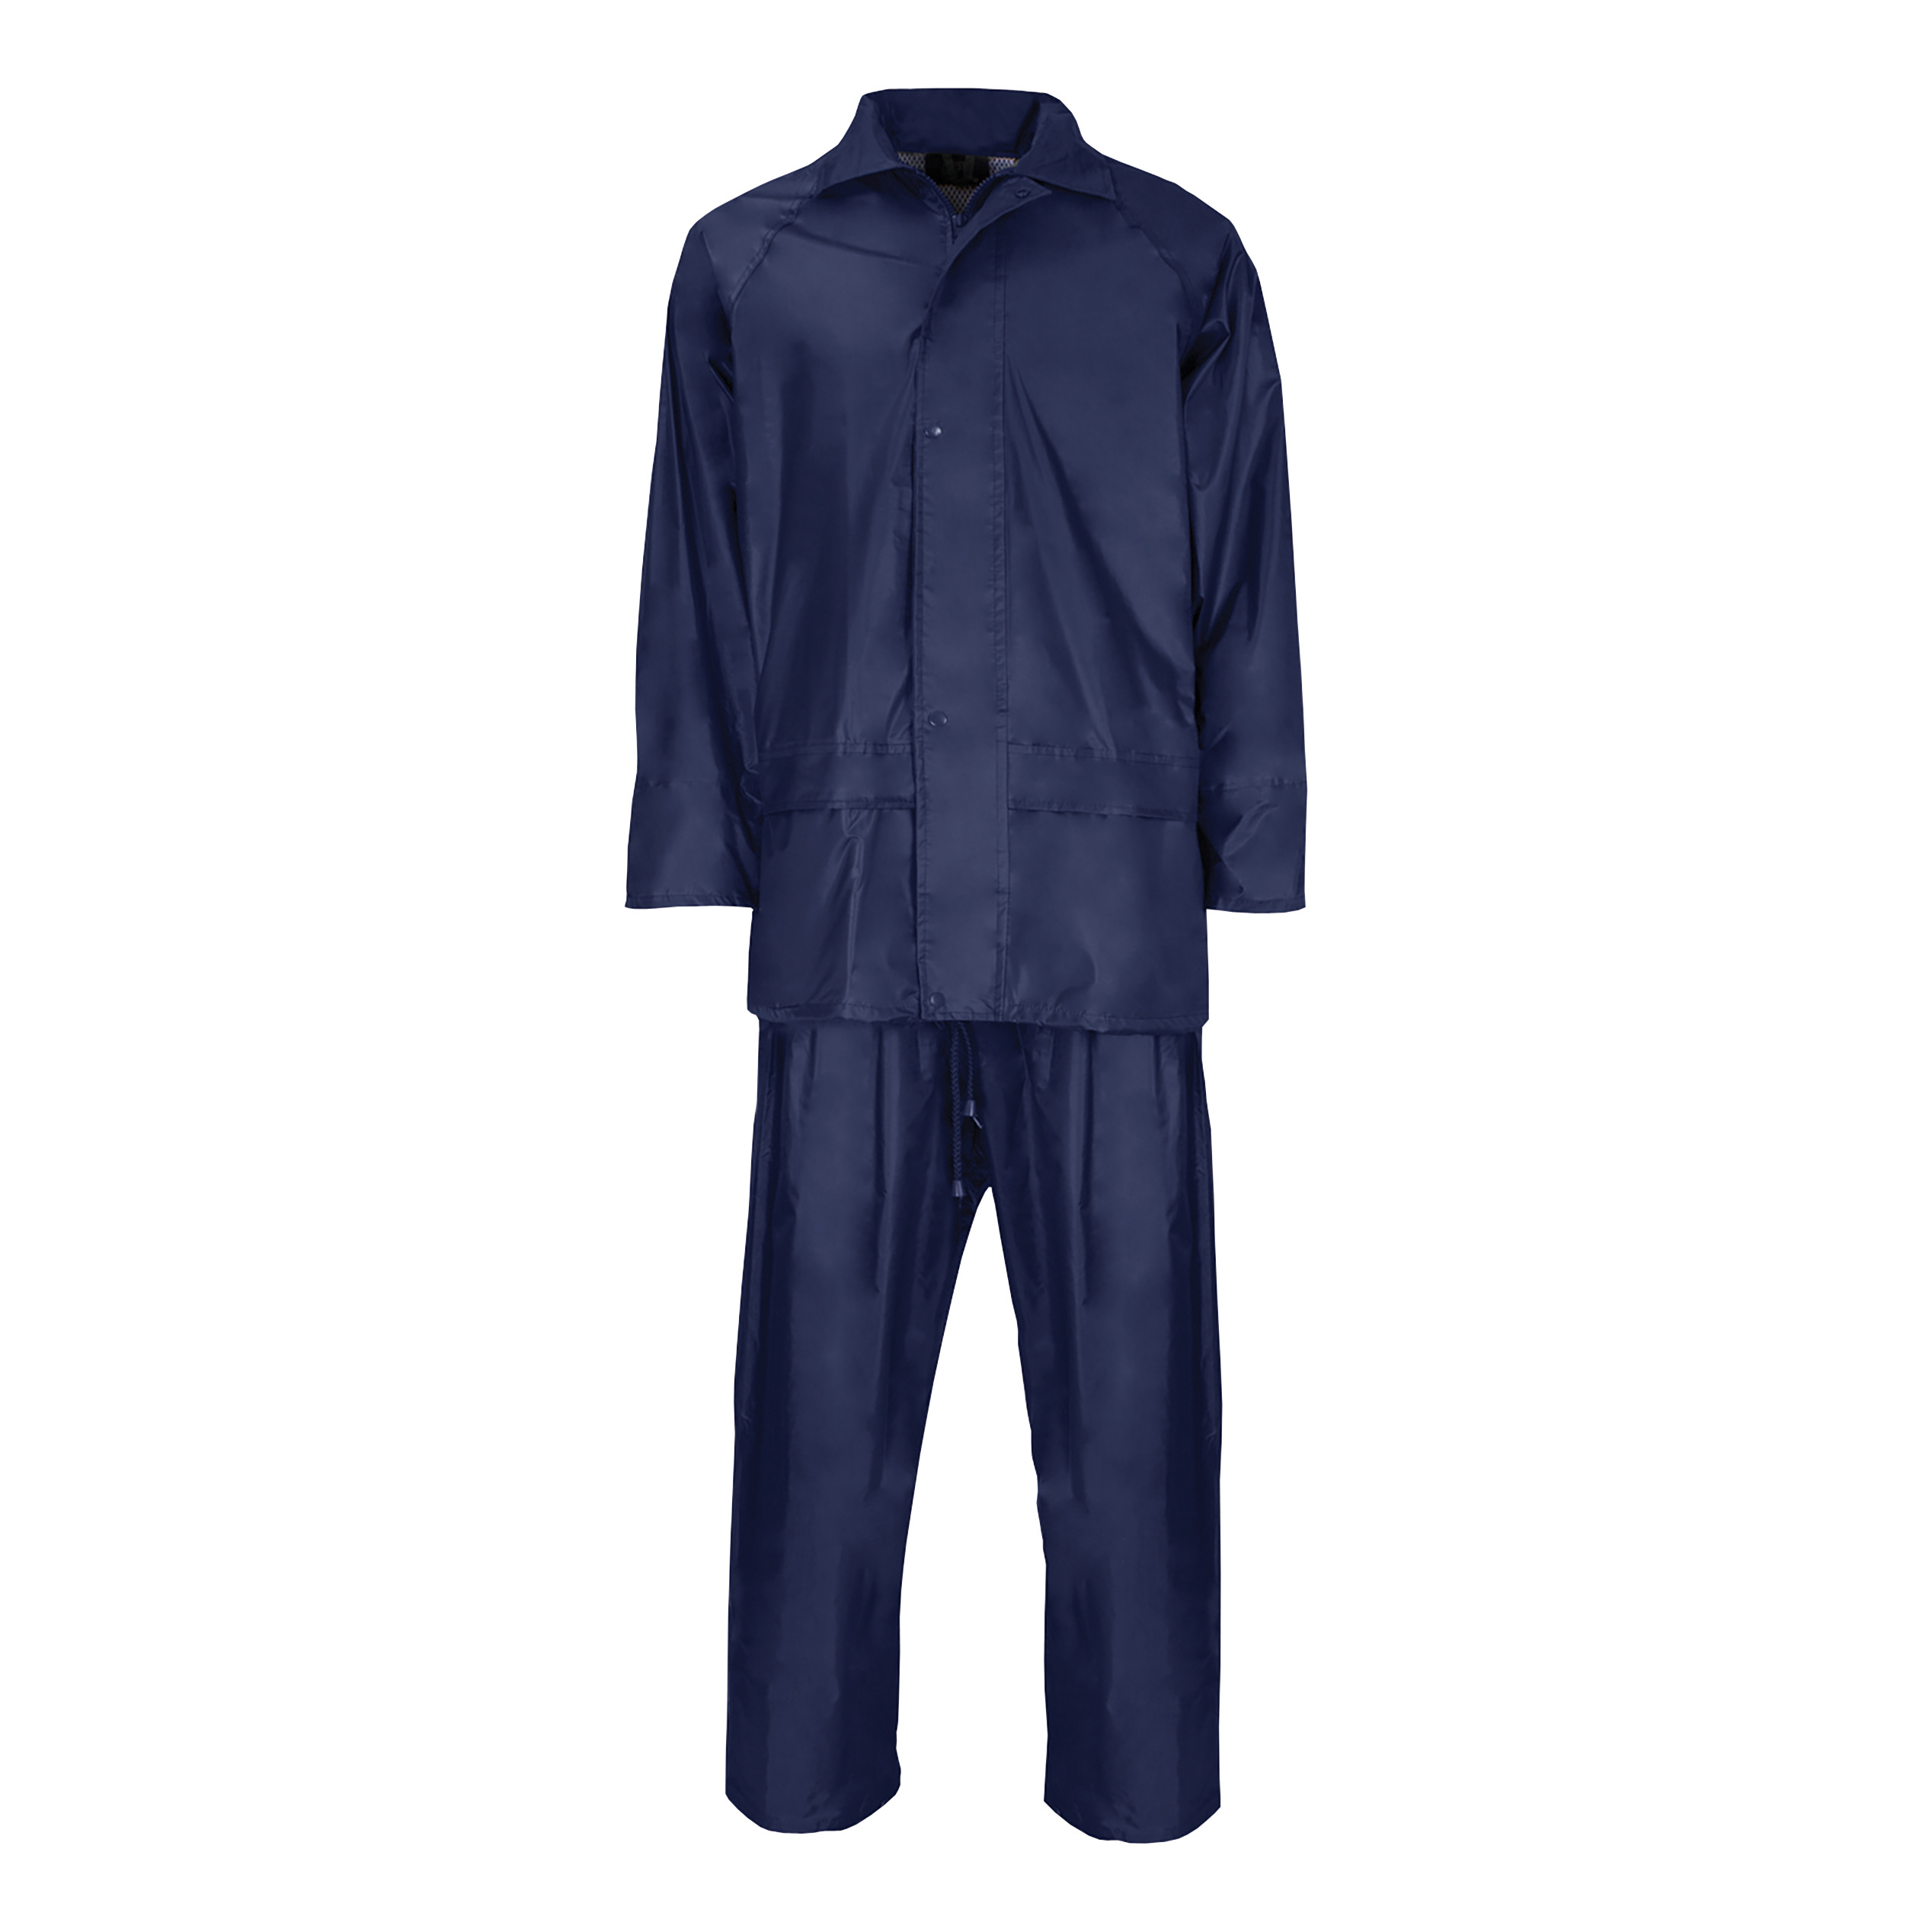 Rainsuit Polyester/PVC with Elasticated Waisted Trousers Medium Navy Ref NBDSNM *Approx 3 Day Leadtime*